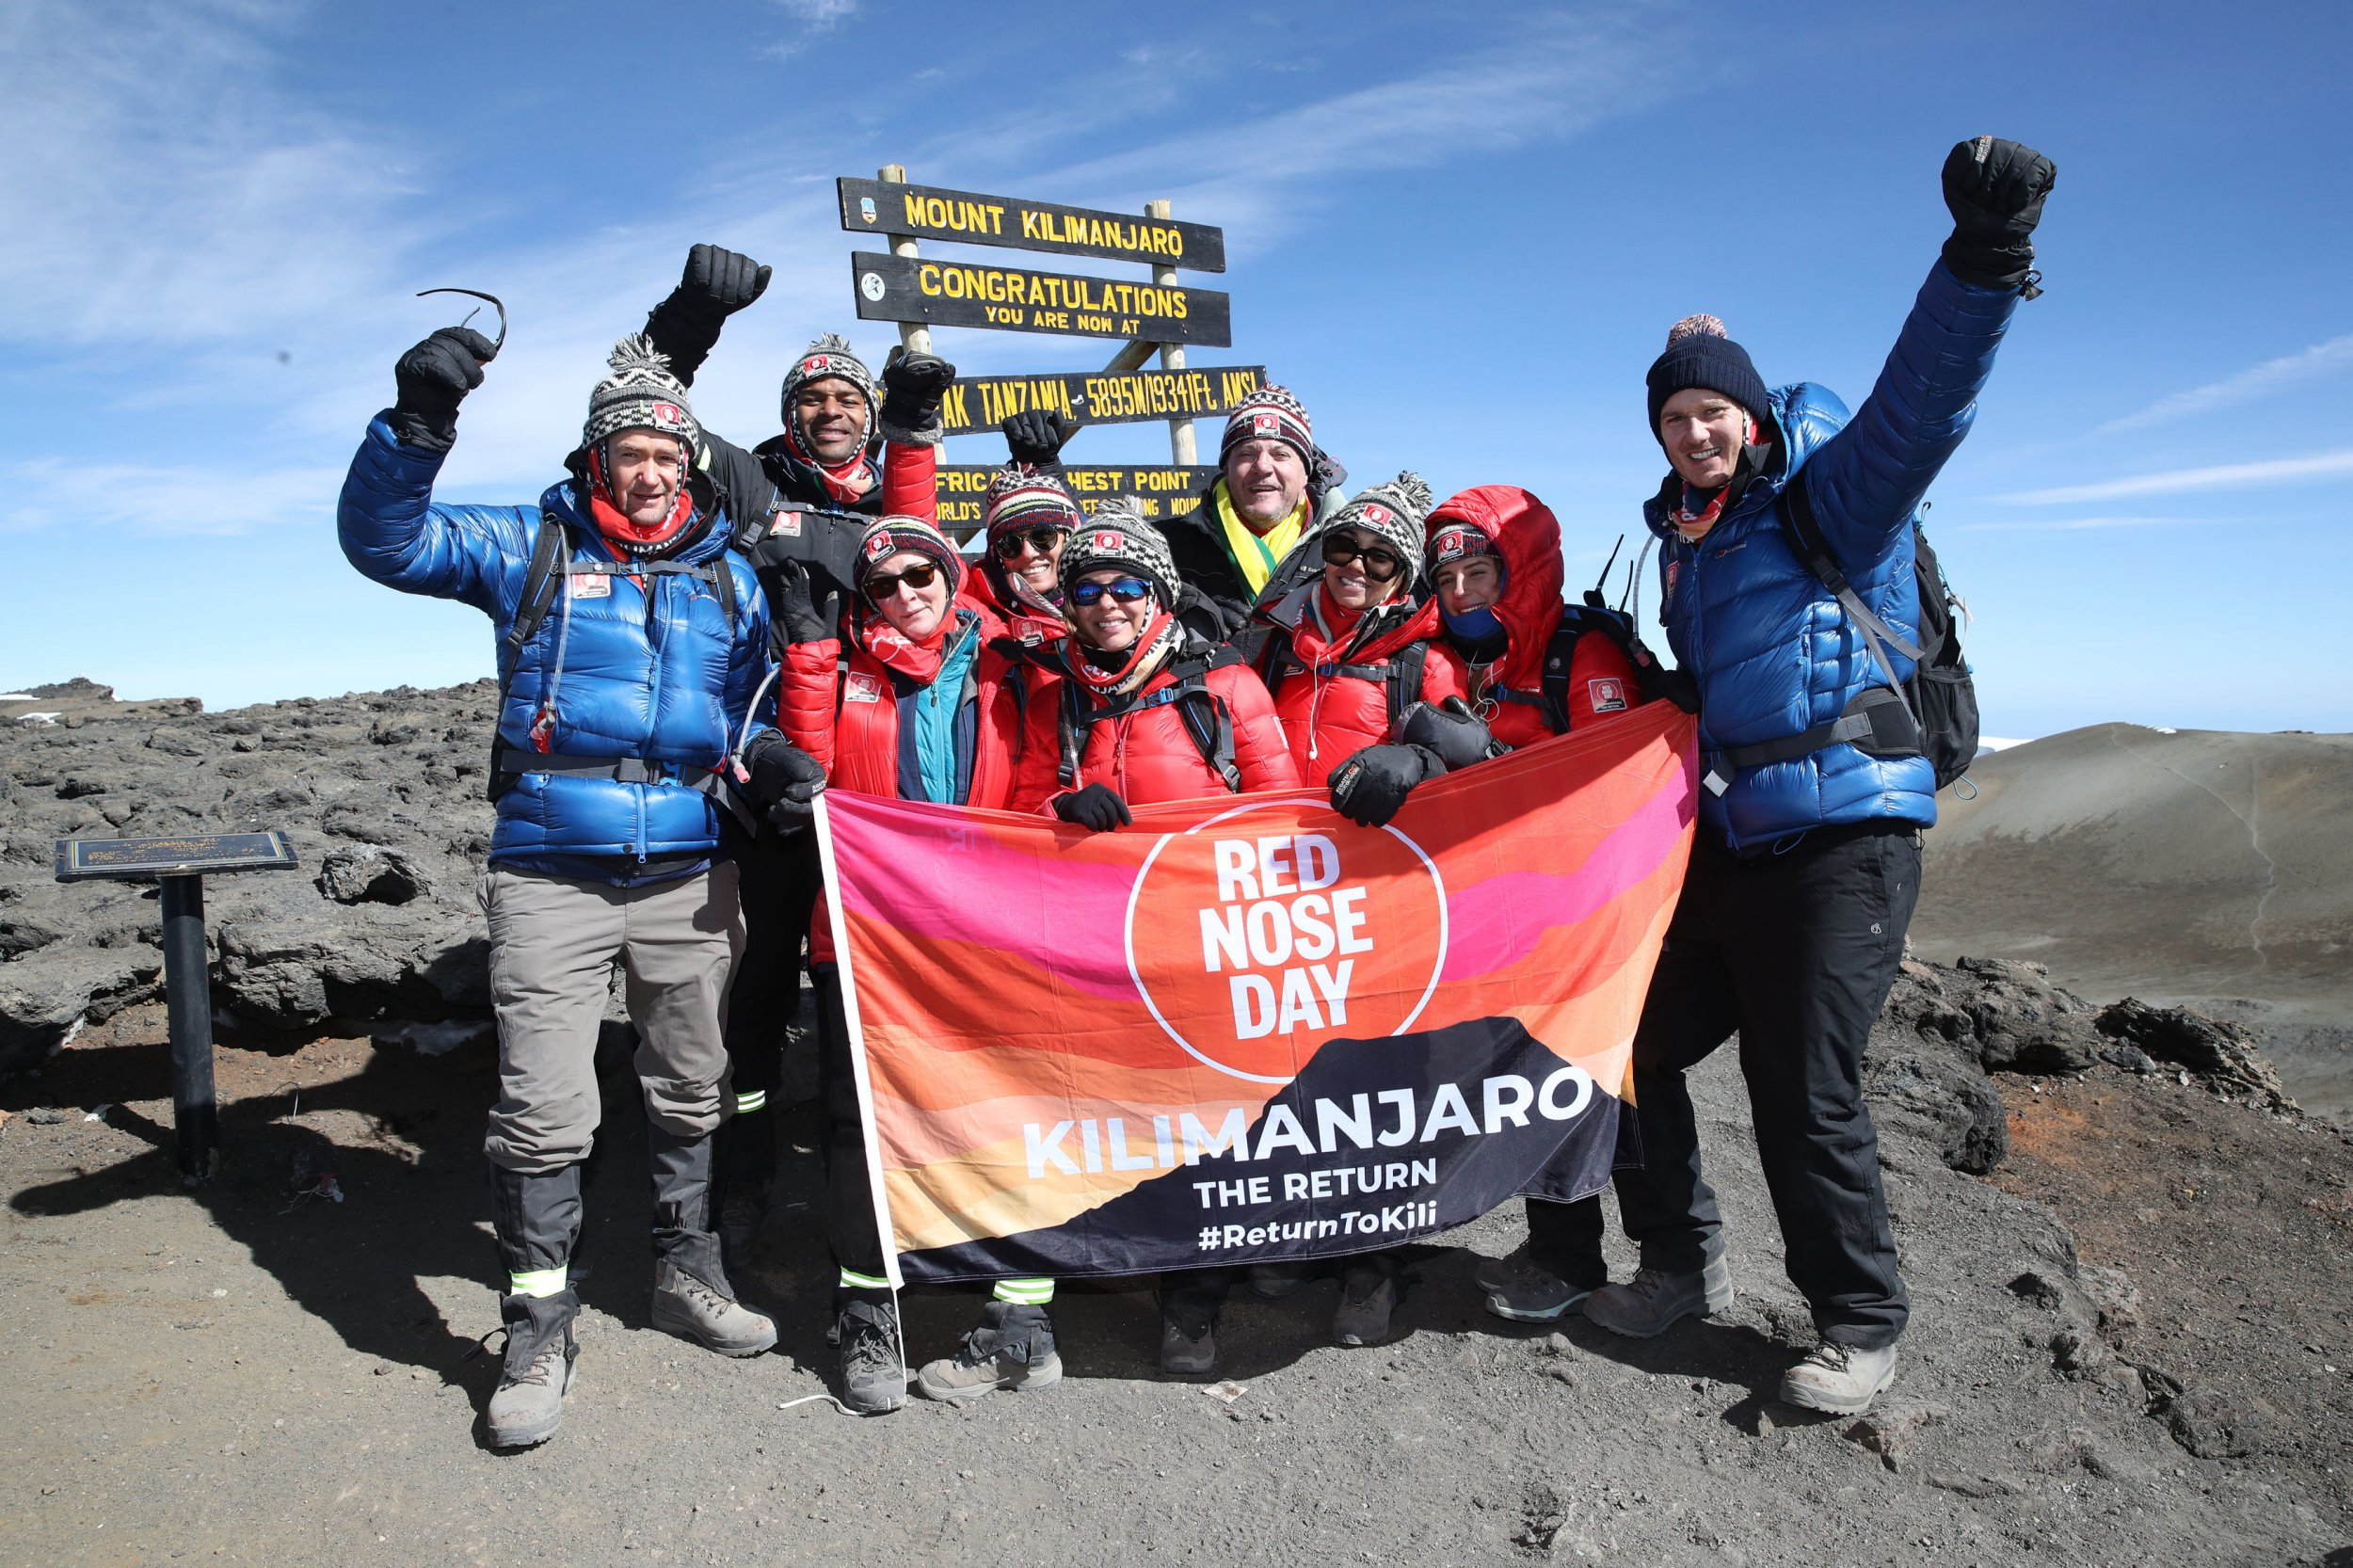 Little Mix, Dani Dyer and more reach Mount Kilimanjaro summit for Comic Relief